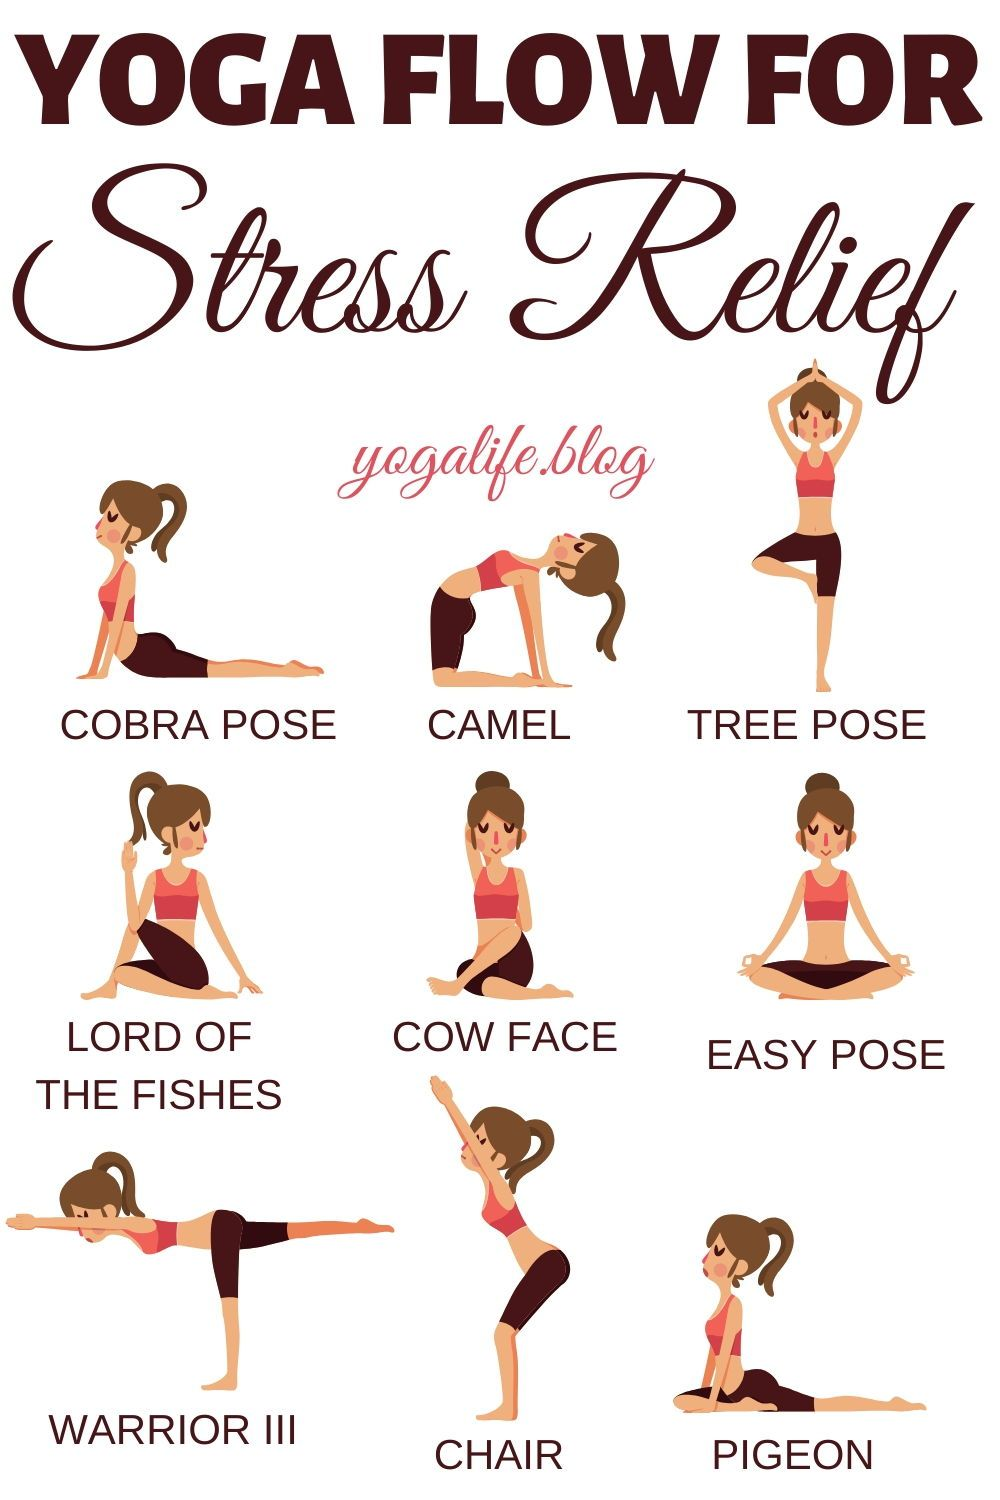 10 Easy Yoga Poses For Stress Relief in 2020 | Yoga ...